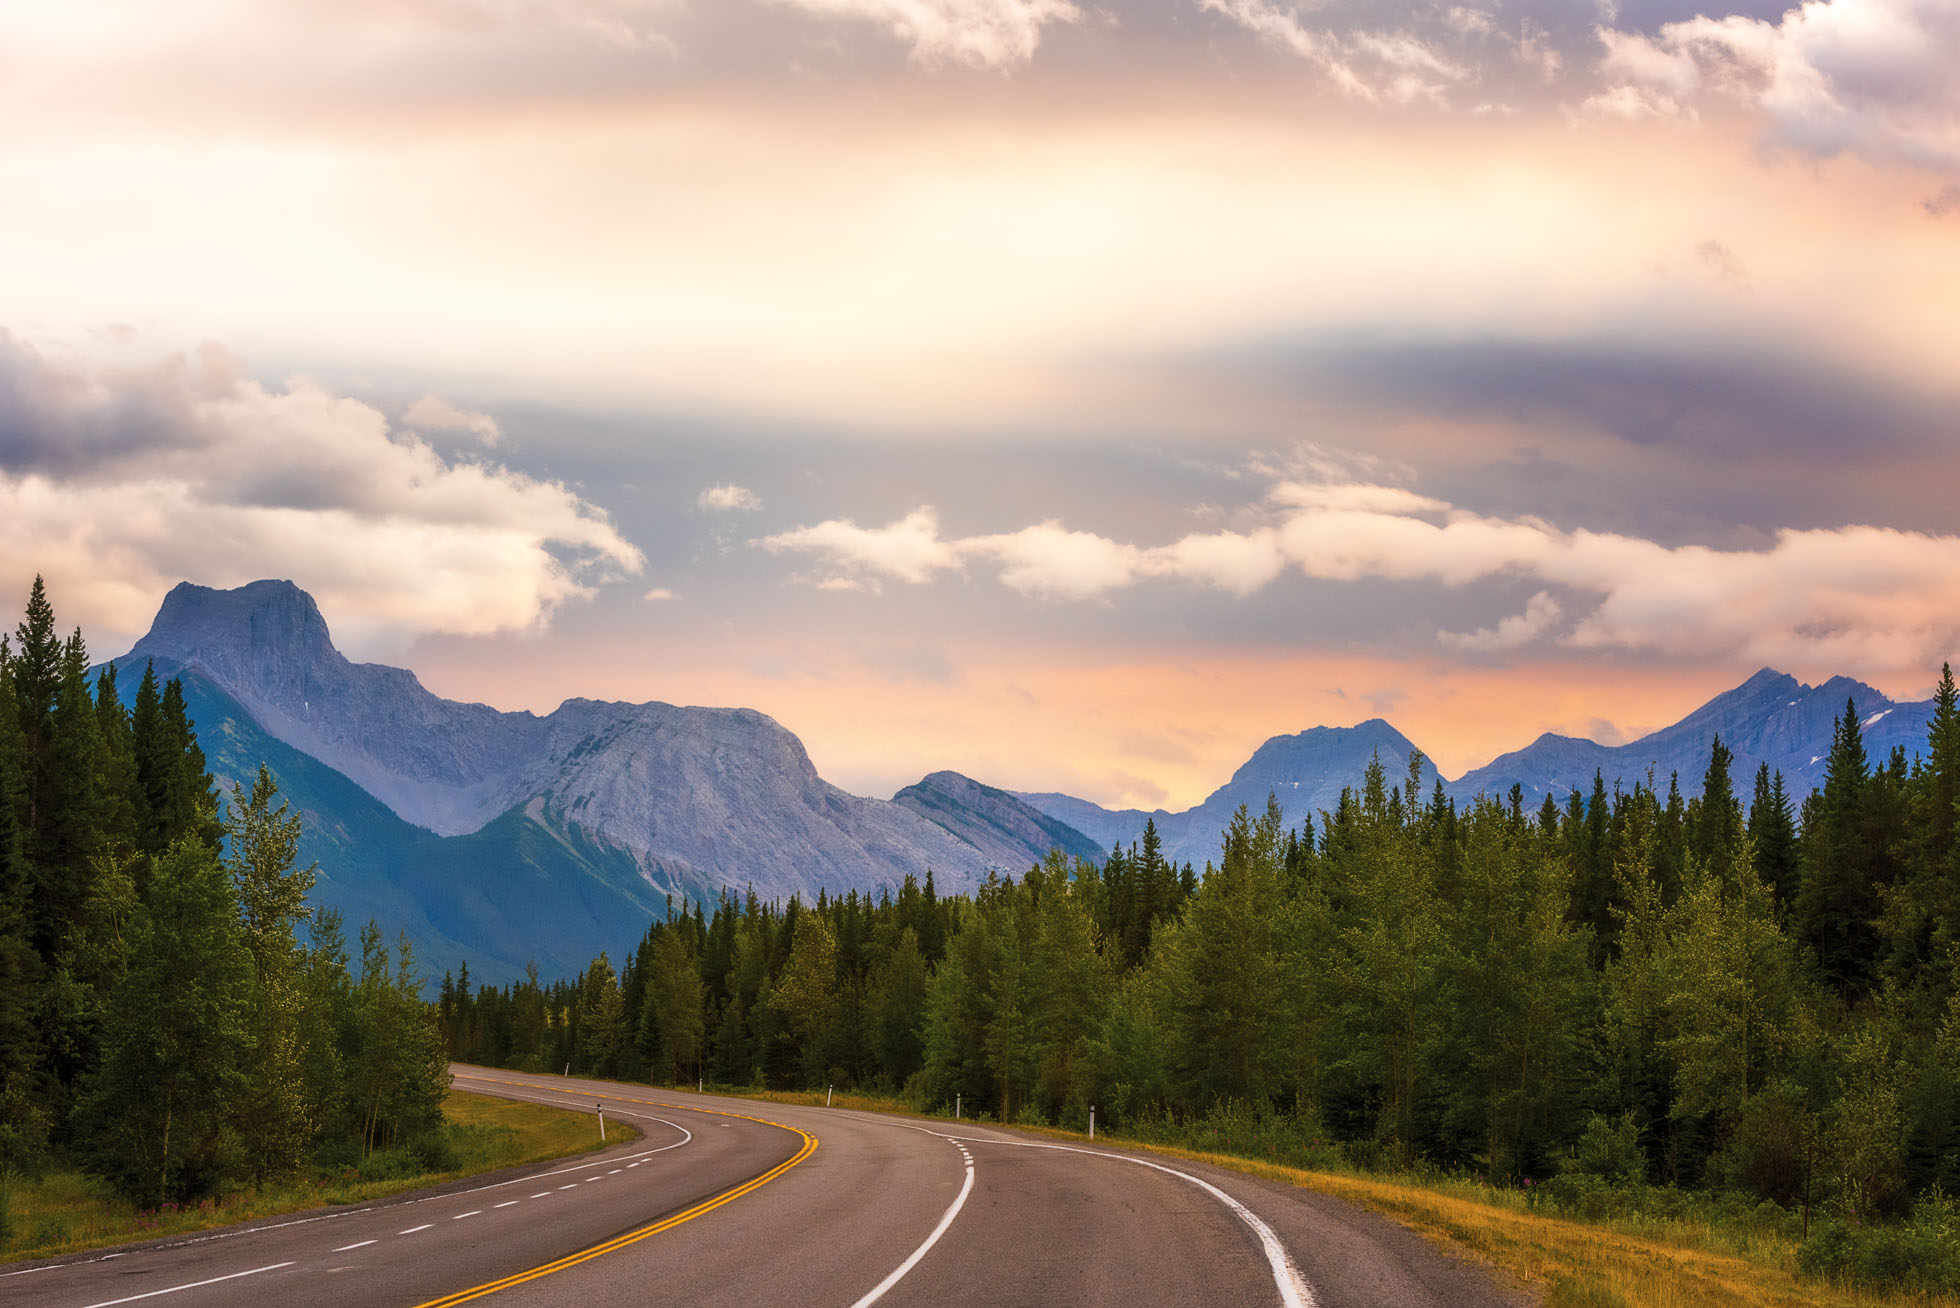 The Road to Kananaskis Country